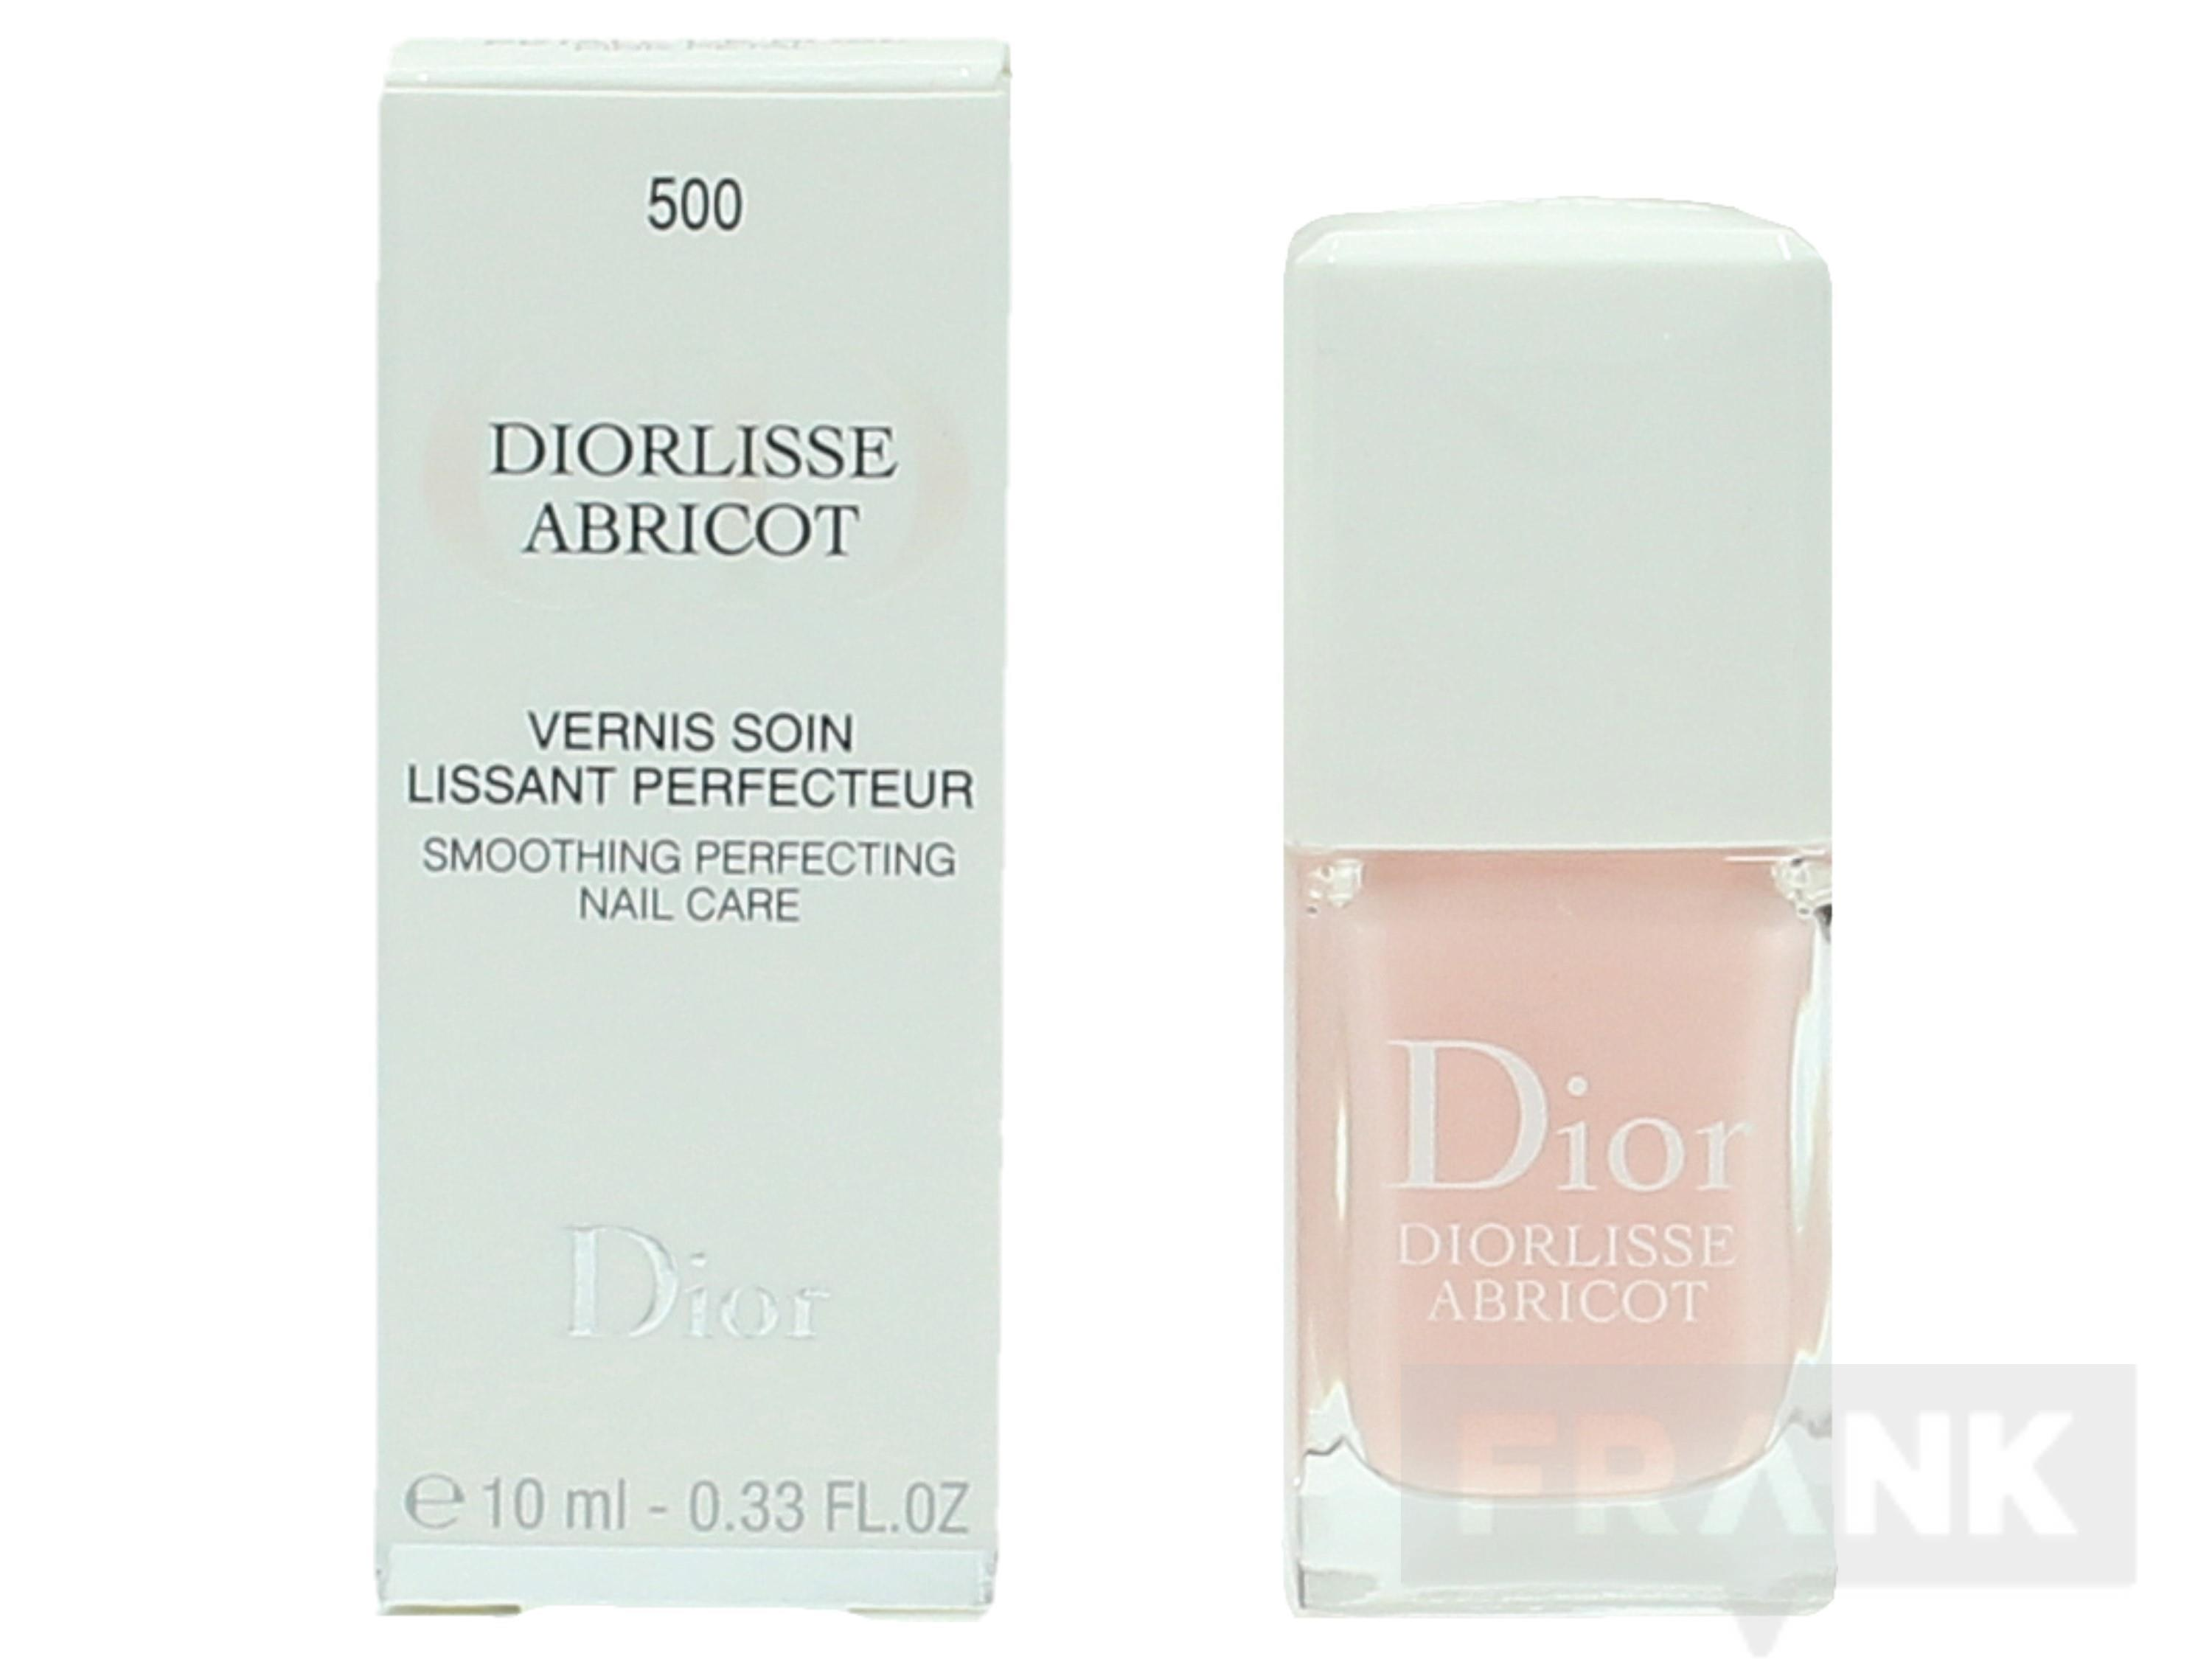 C.Dior Diorlisse Abricot Smoothing Perfecting Nail 10ml